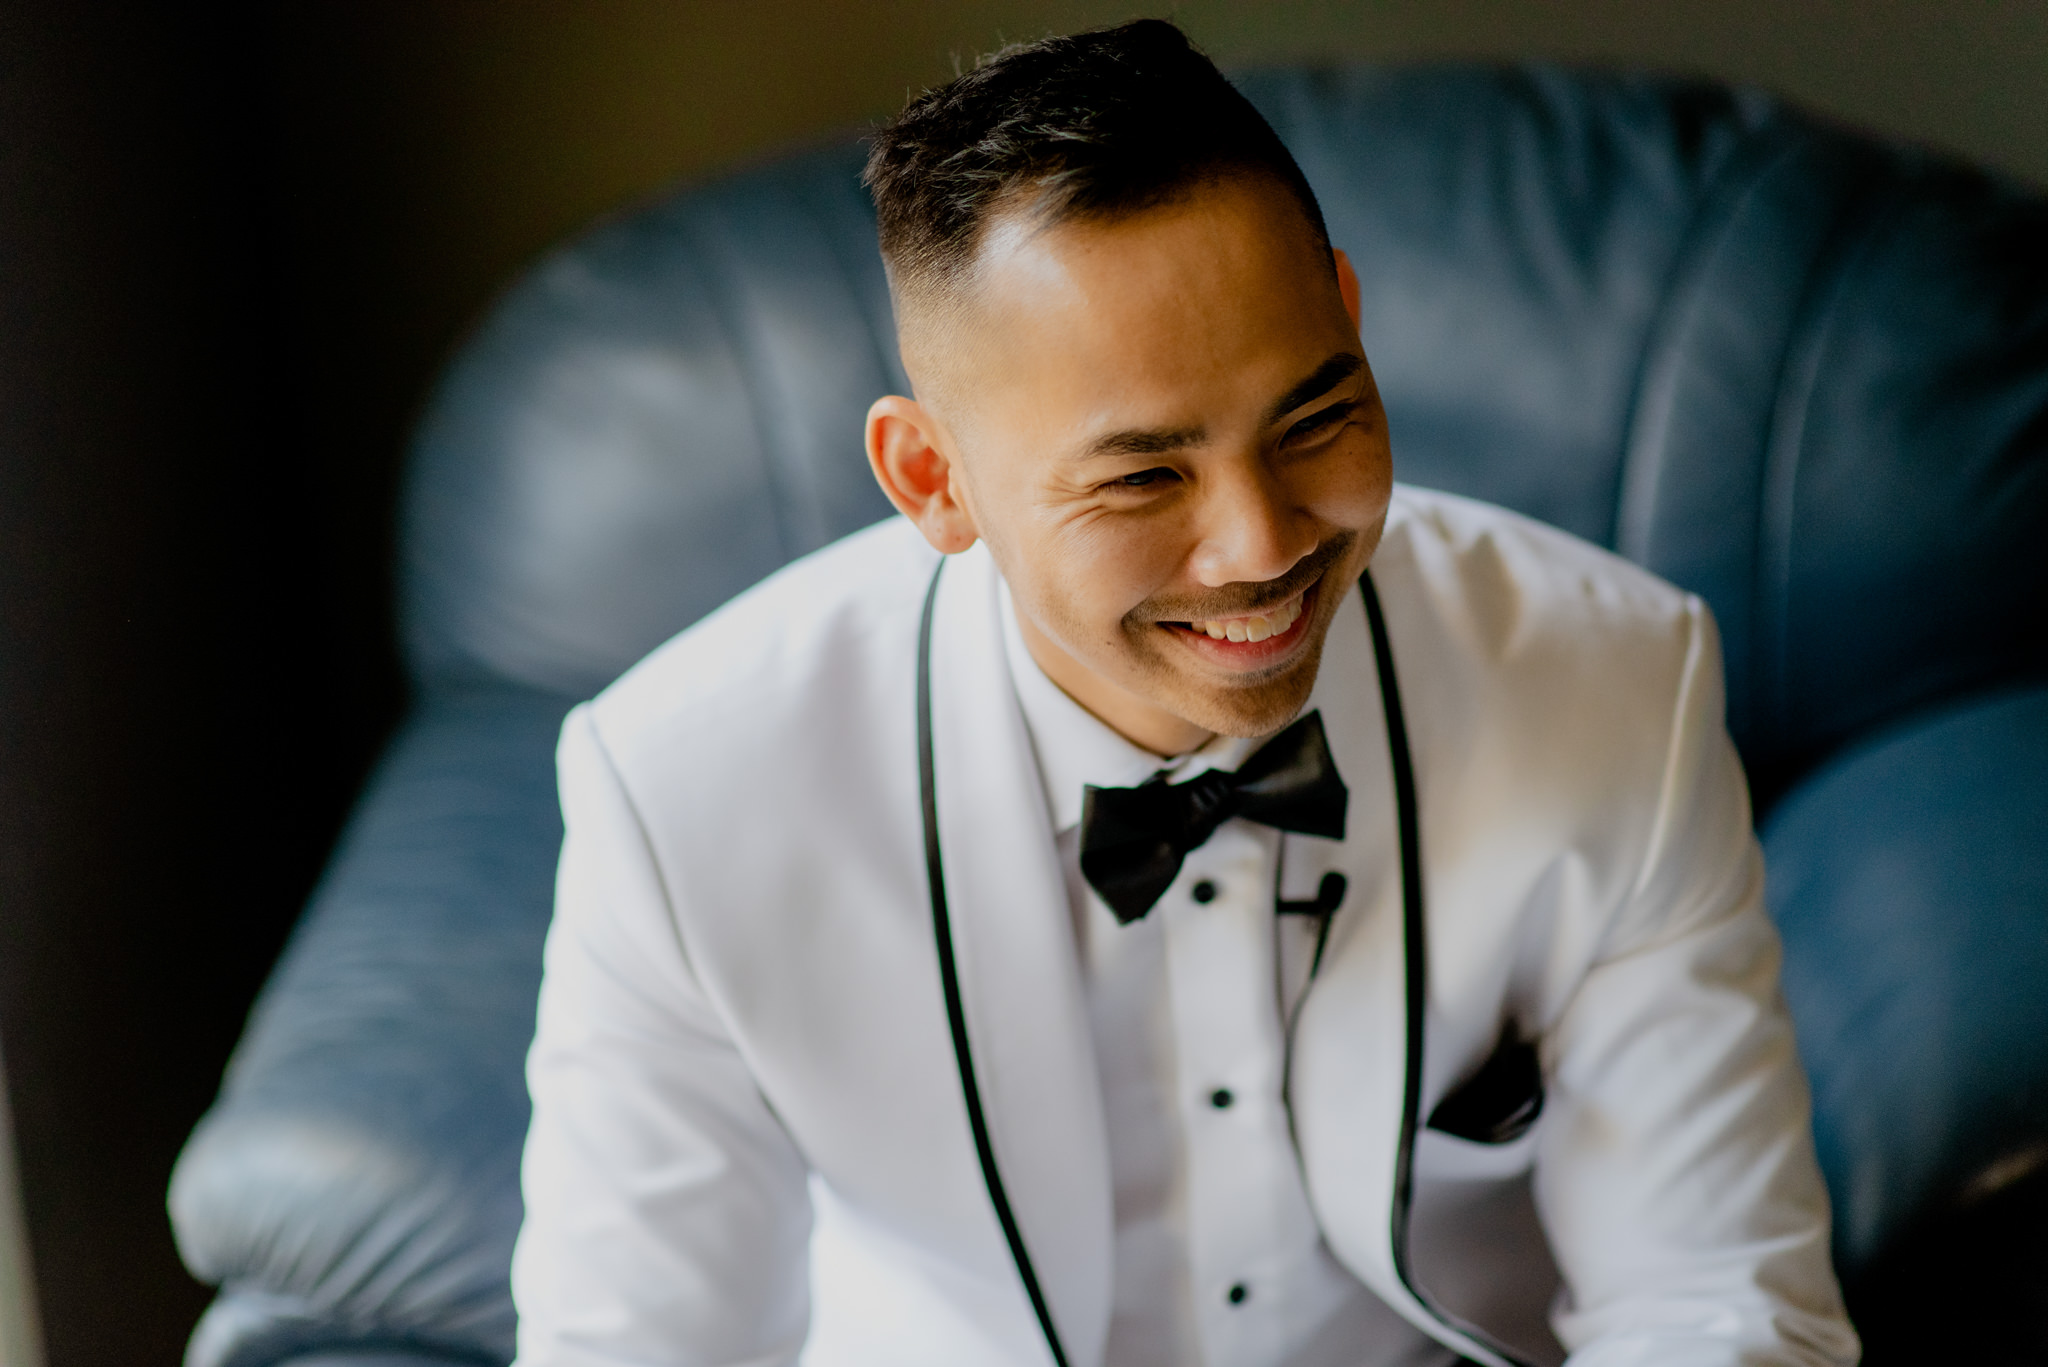 An asian man in a white tuxedo sitting on a chair laughs